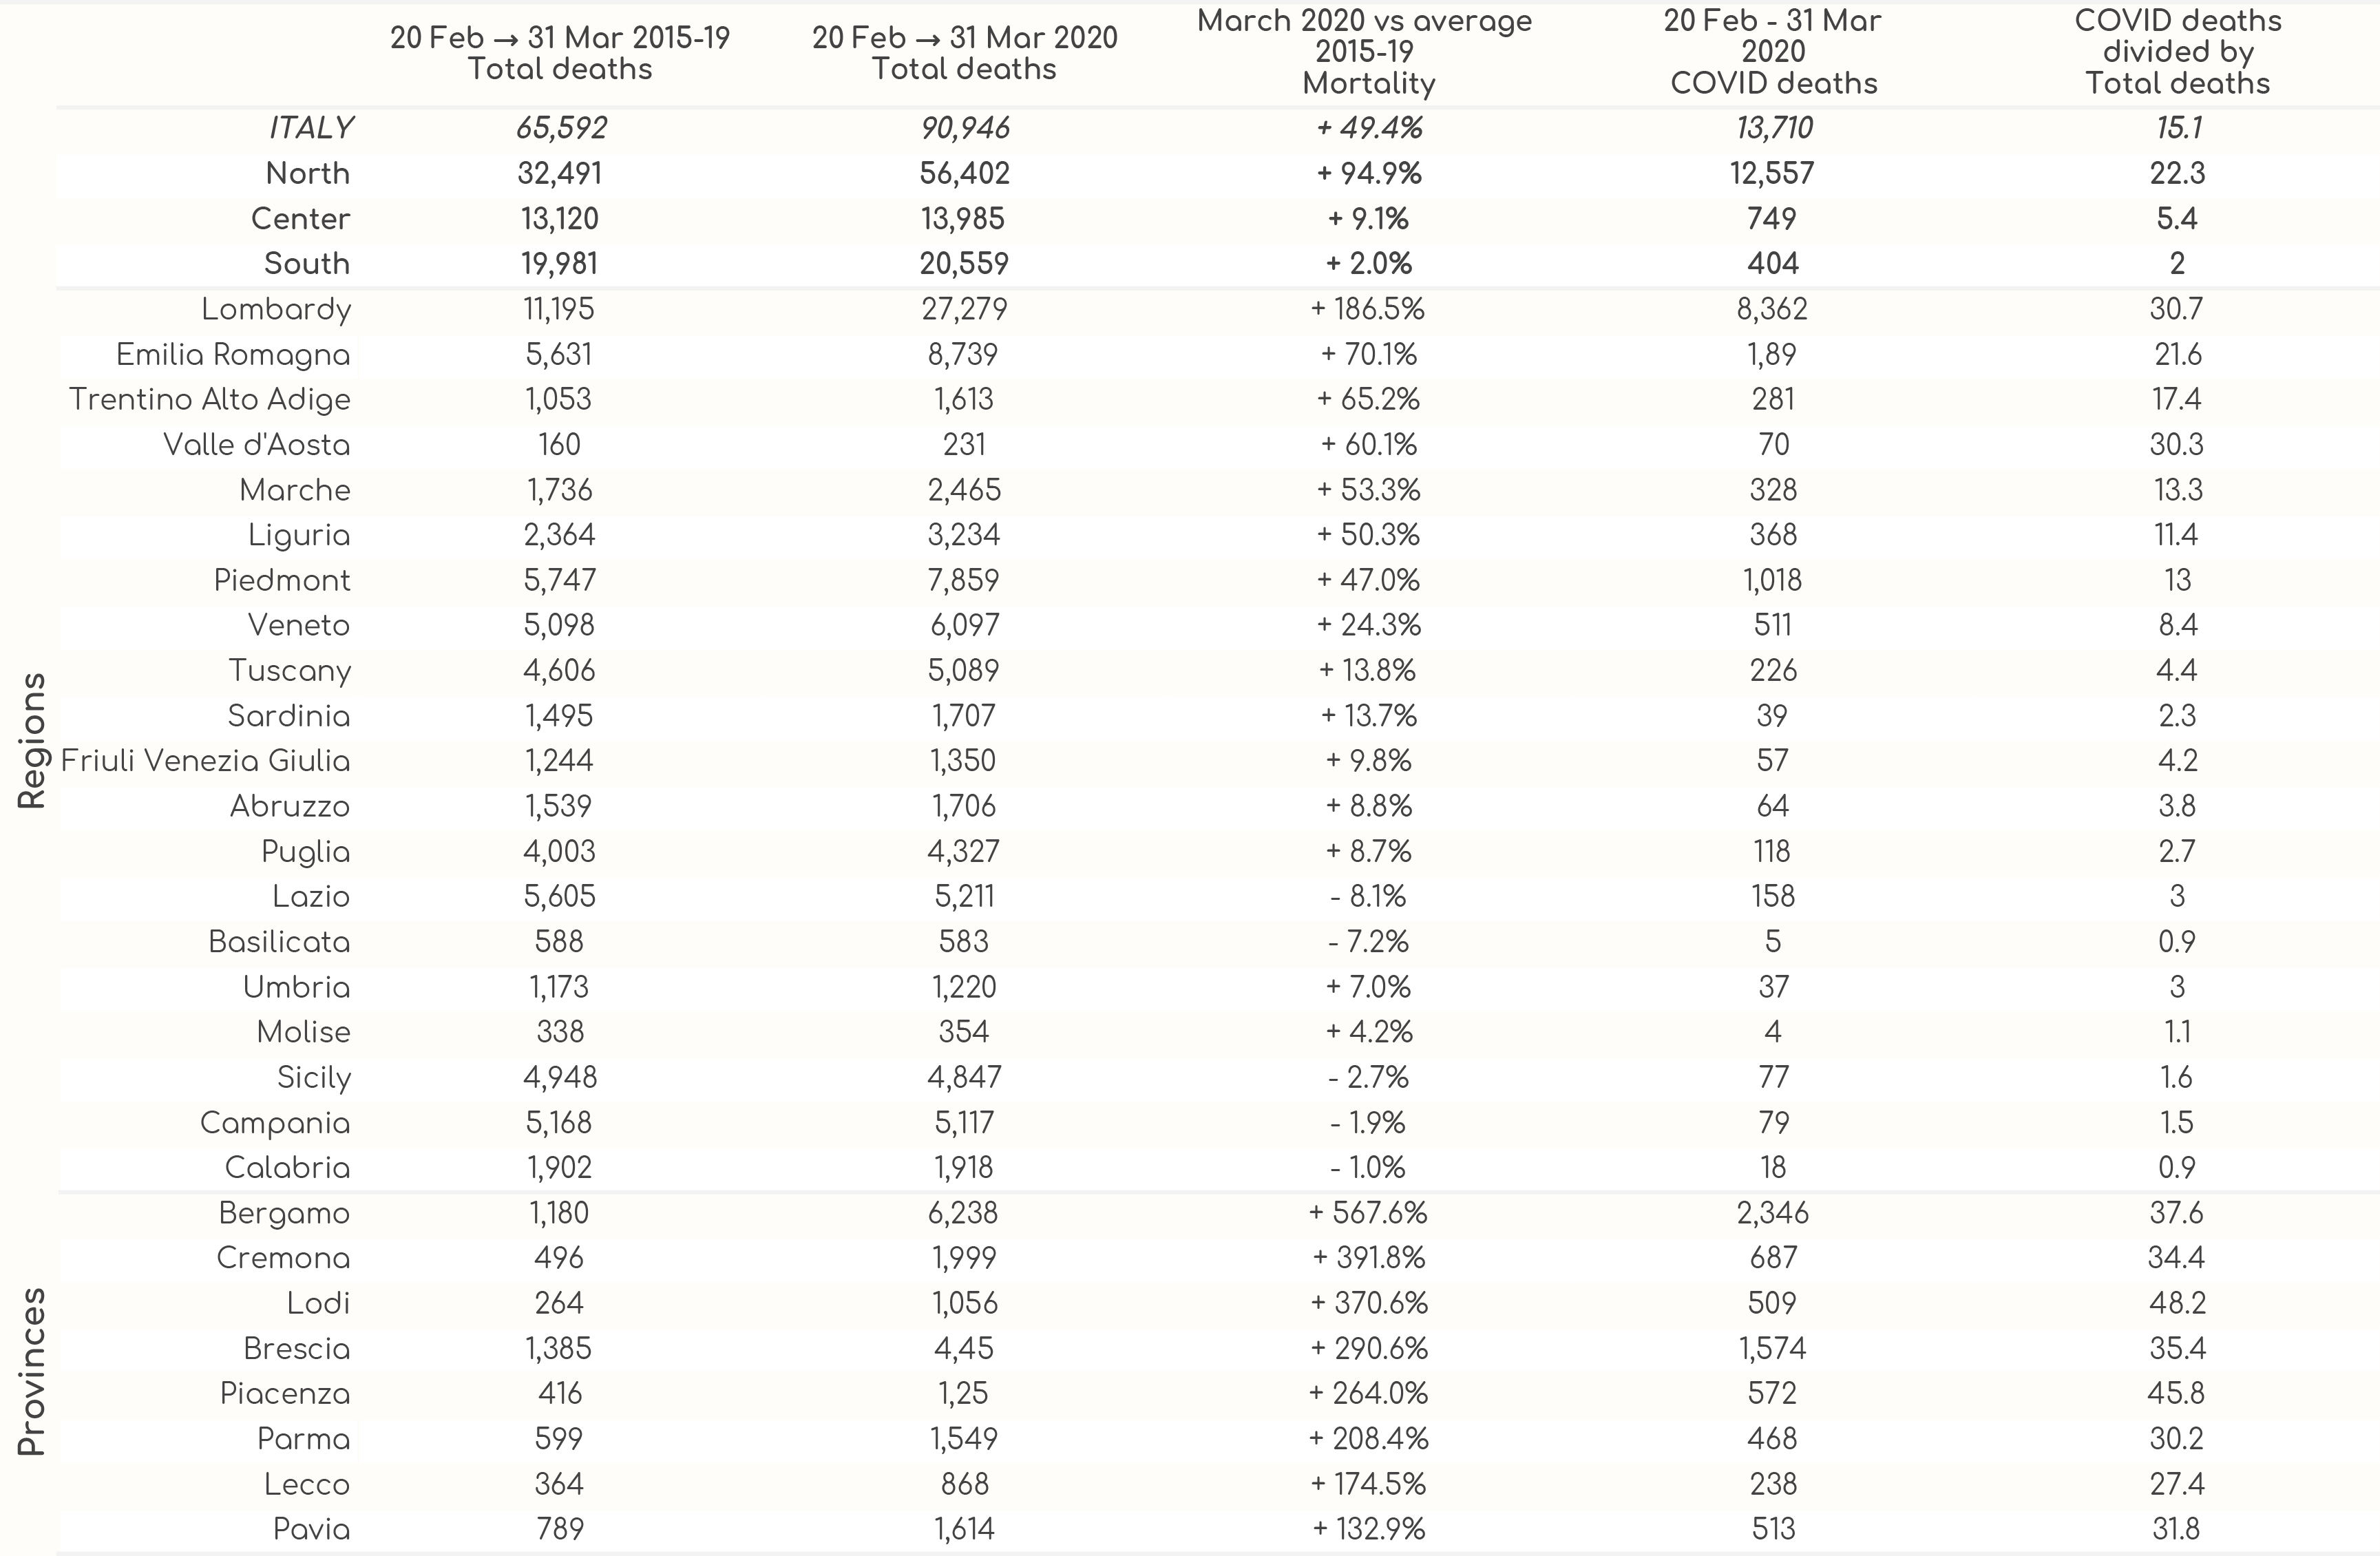 Impact of COVID-19 in Italy on Total Mortality